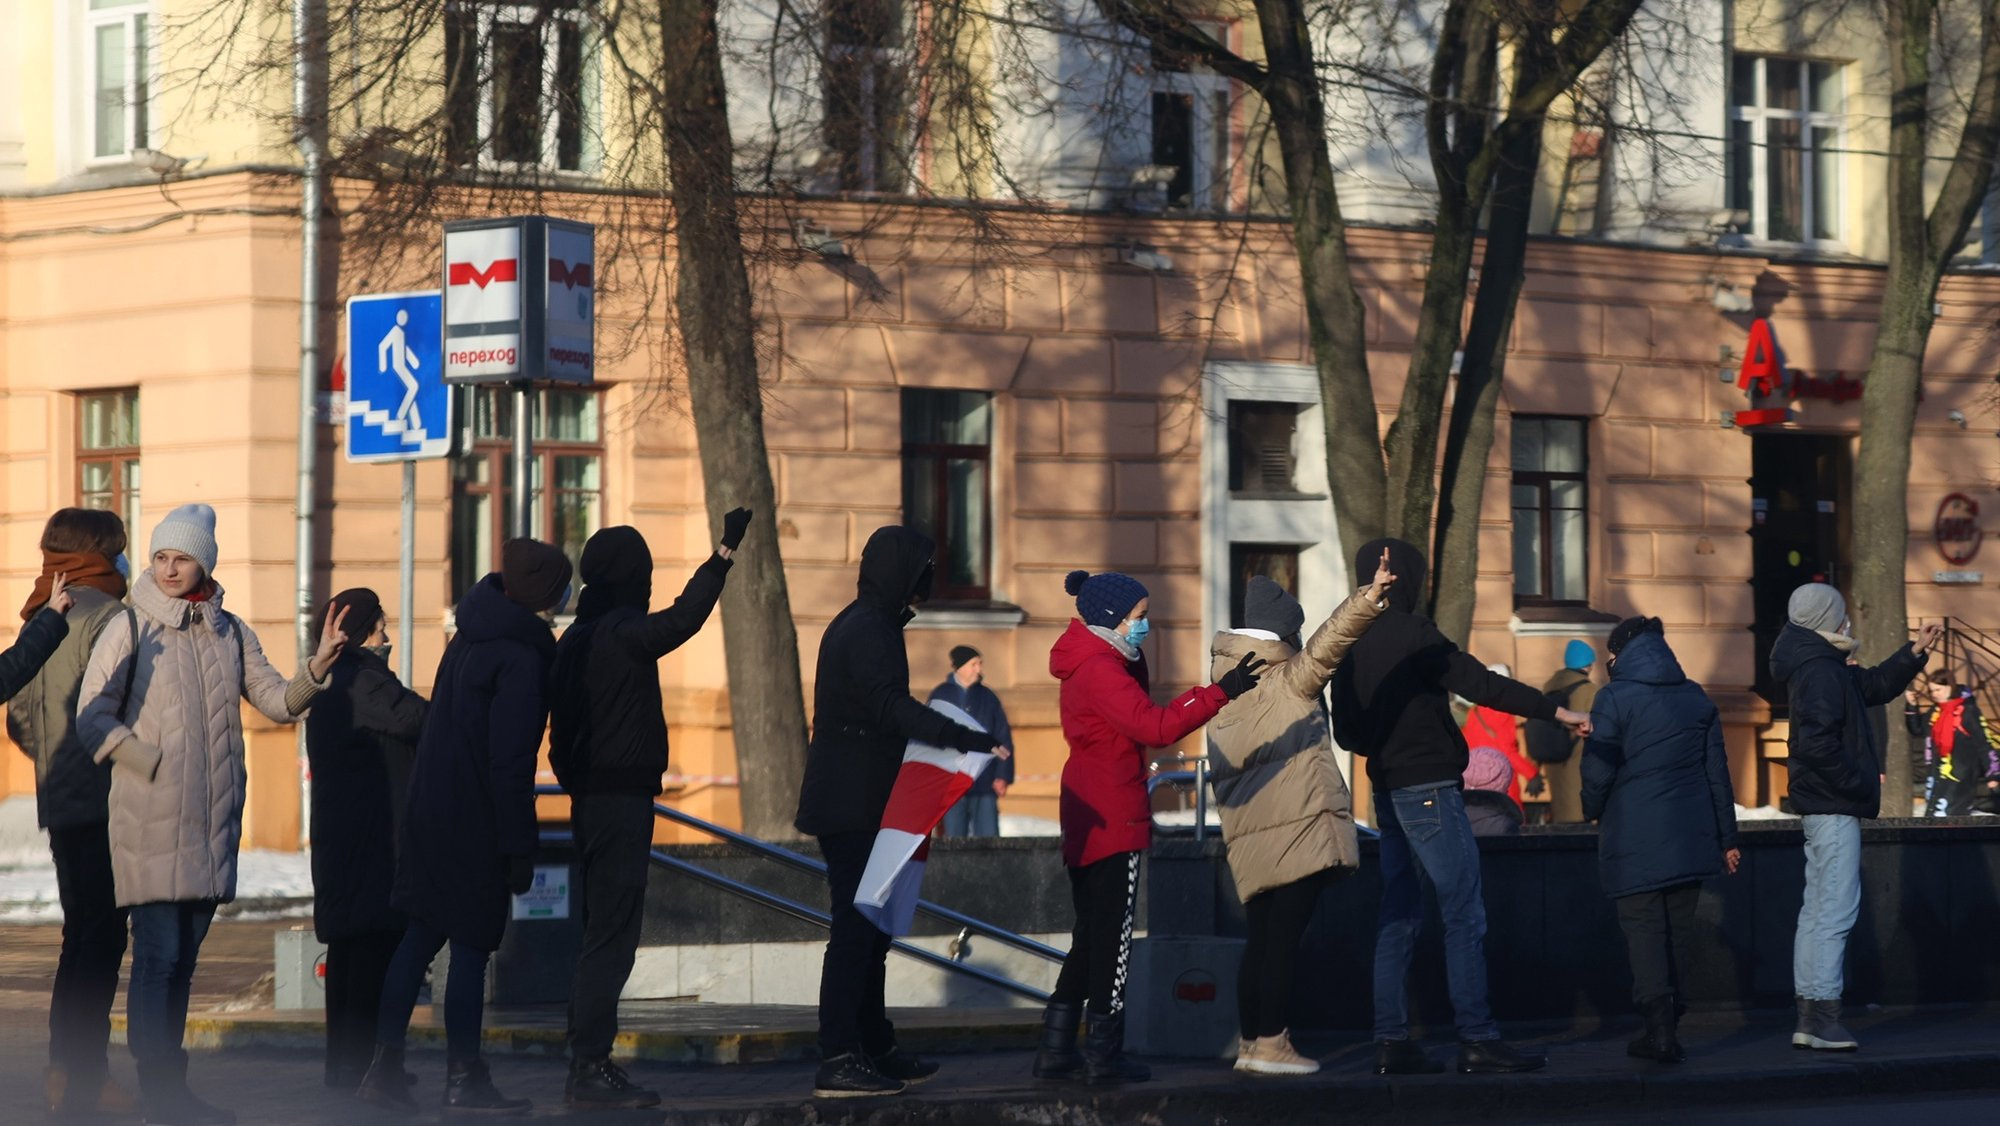 epa08959868 Protesters take part in 'solidarity chains' to show support to imprisoned protesters and to protest against the government of Belarusian President Lukashenko, in Minsk, Belarus, 23 January 2021.  EPA/STR